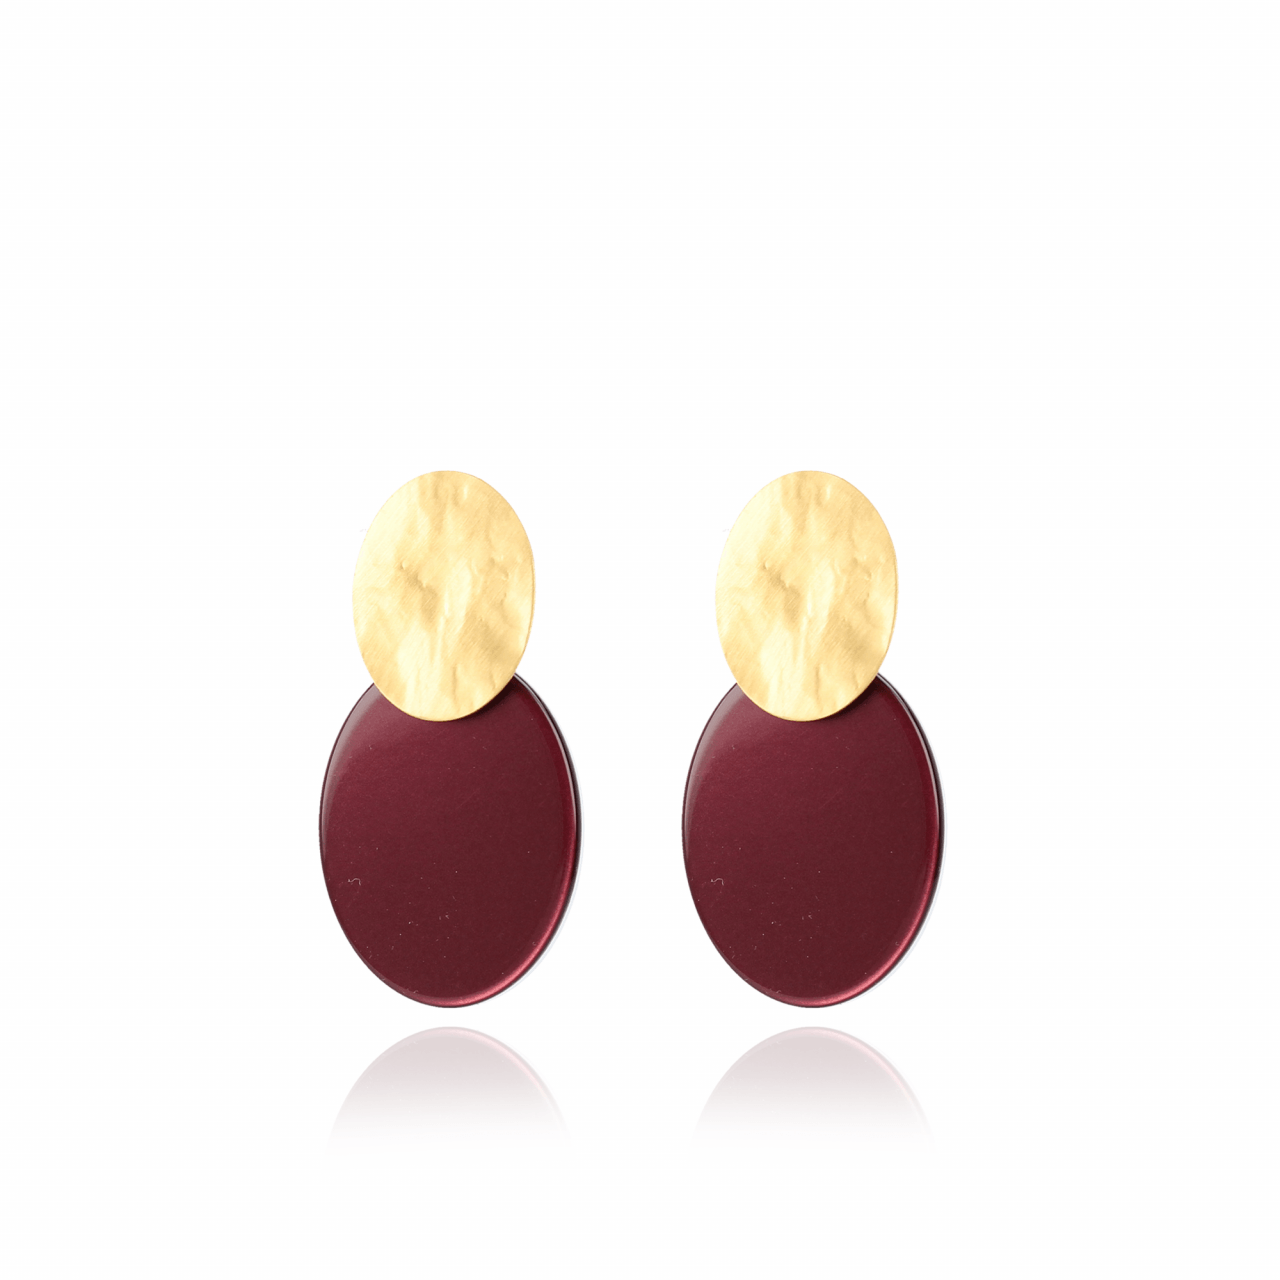 Metallic bordeaux resin closed oval S earrings